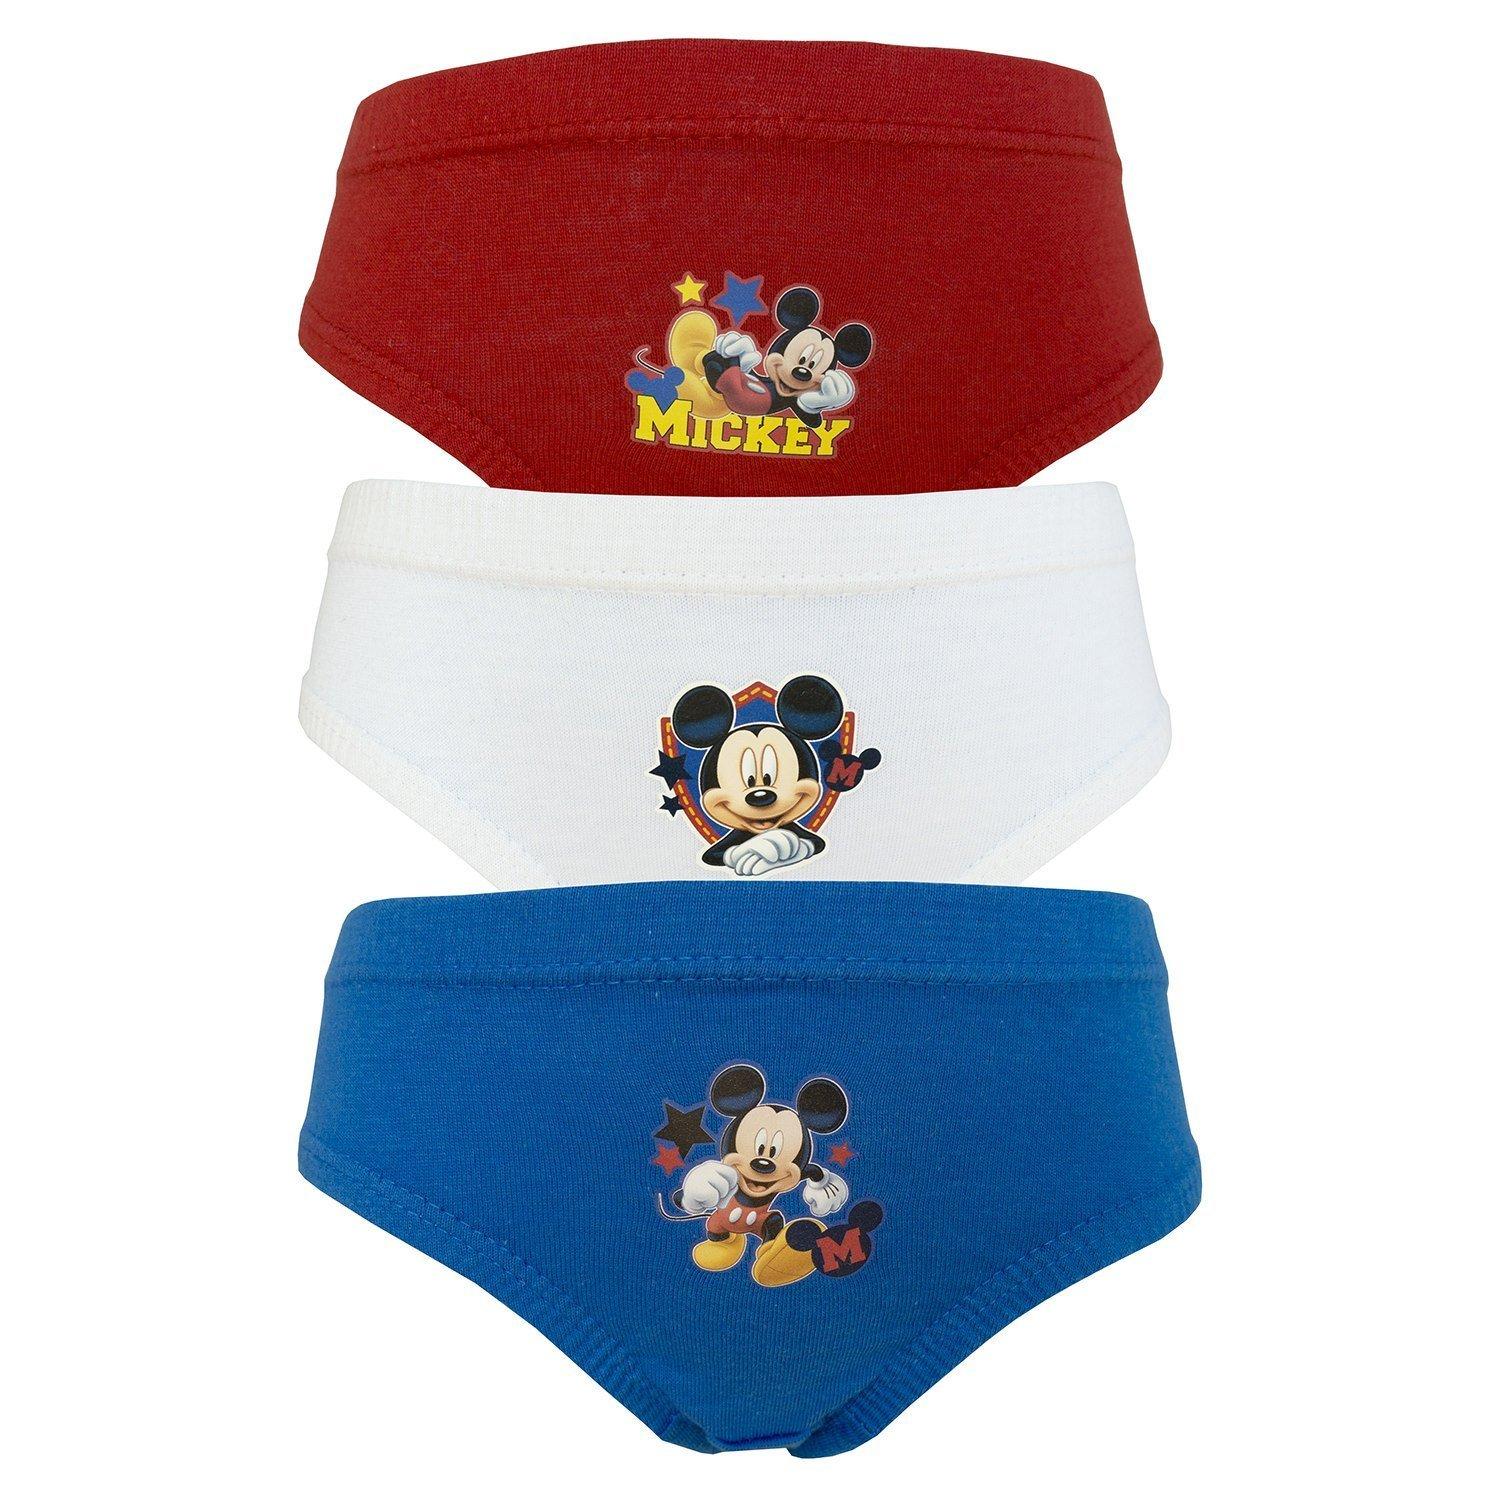 A_M_A_Z_I_N_G 3 Pack Boy's Official Printed Favourite Character Briefs Age's 18 Months To 8 Years PAW Patrol Toy Story Mickey Mouse Disney Night Garden Teletubies Nickelodeon Mickey 2)